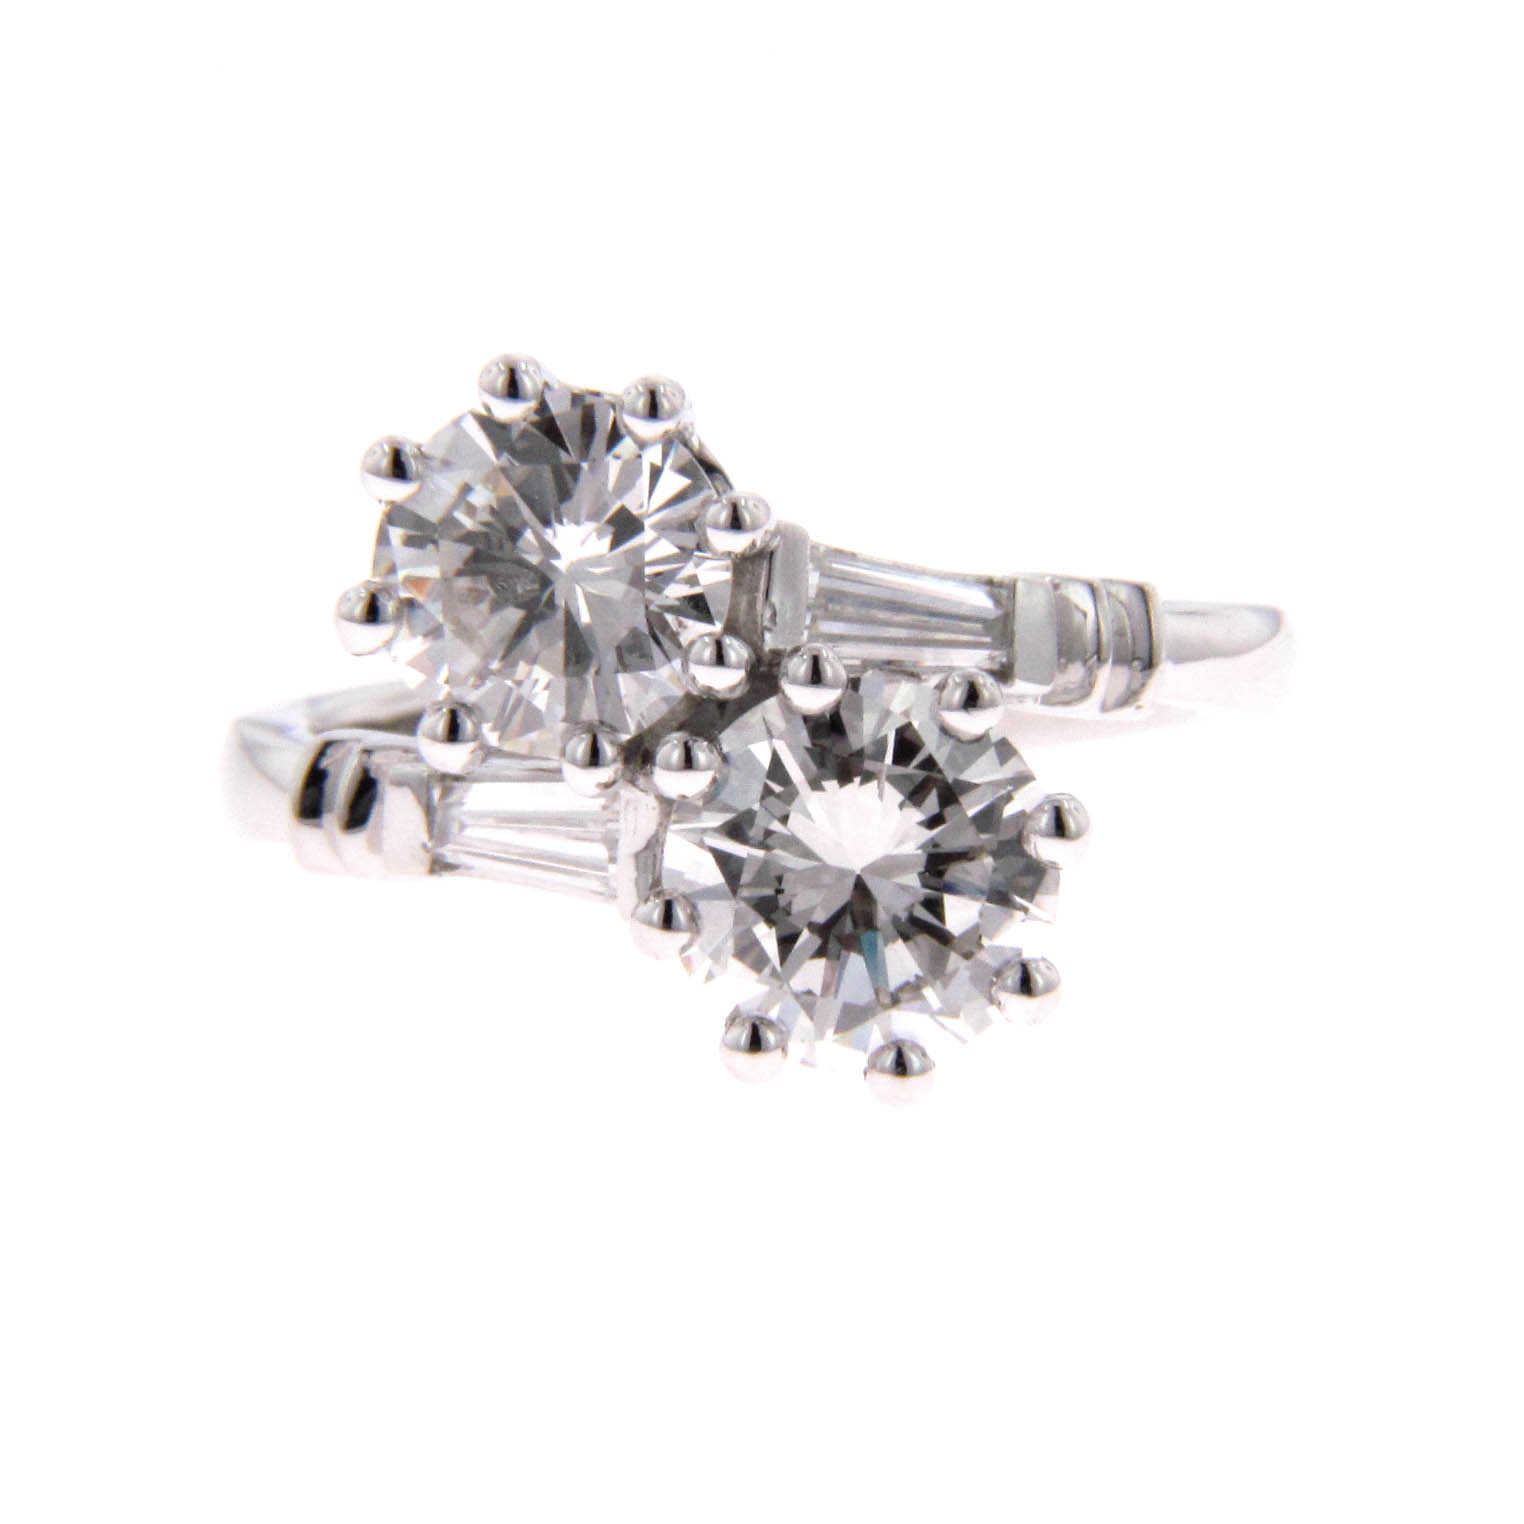 Incorporate Heirloom Diamonds